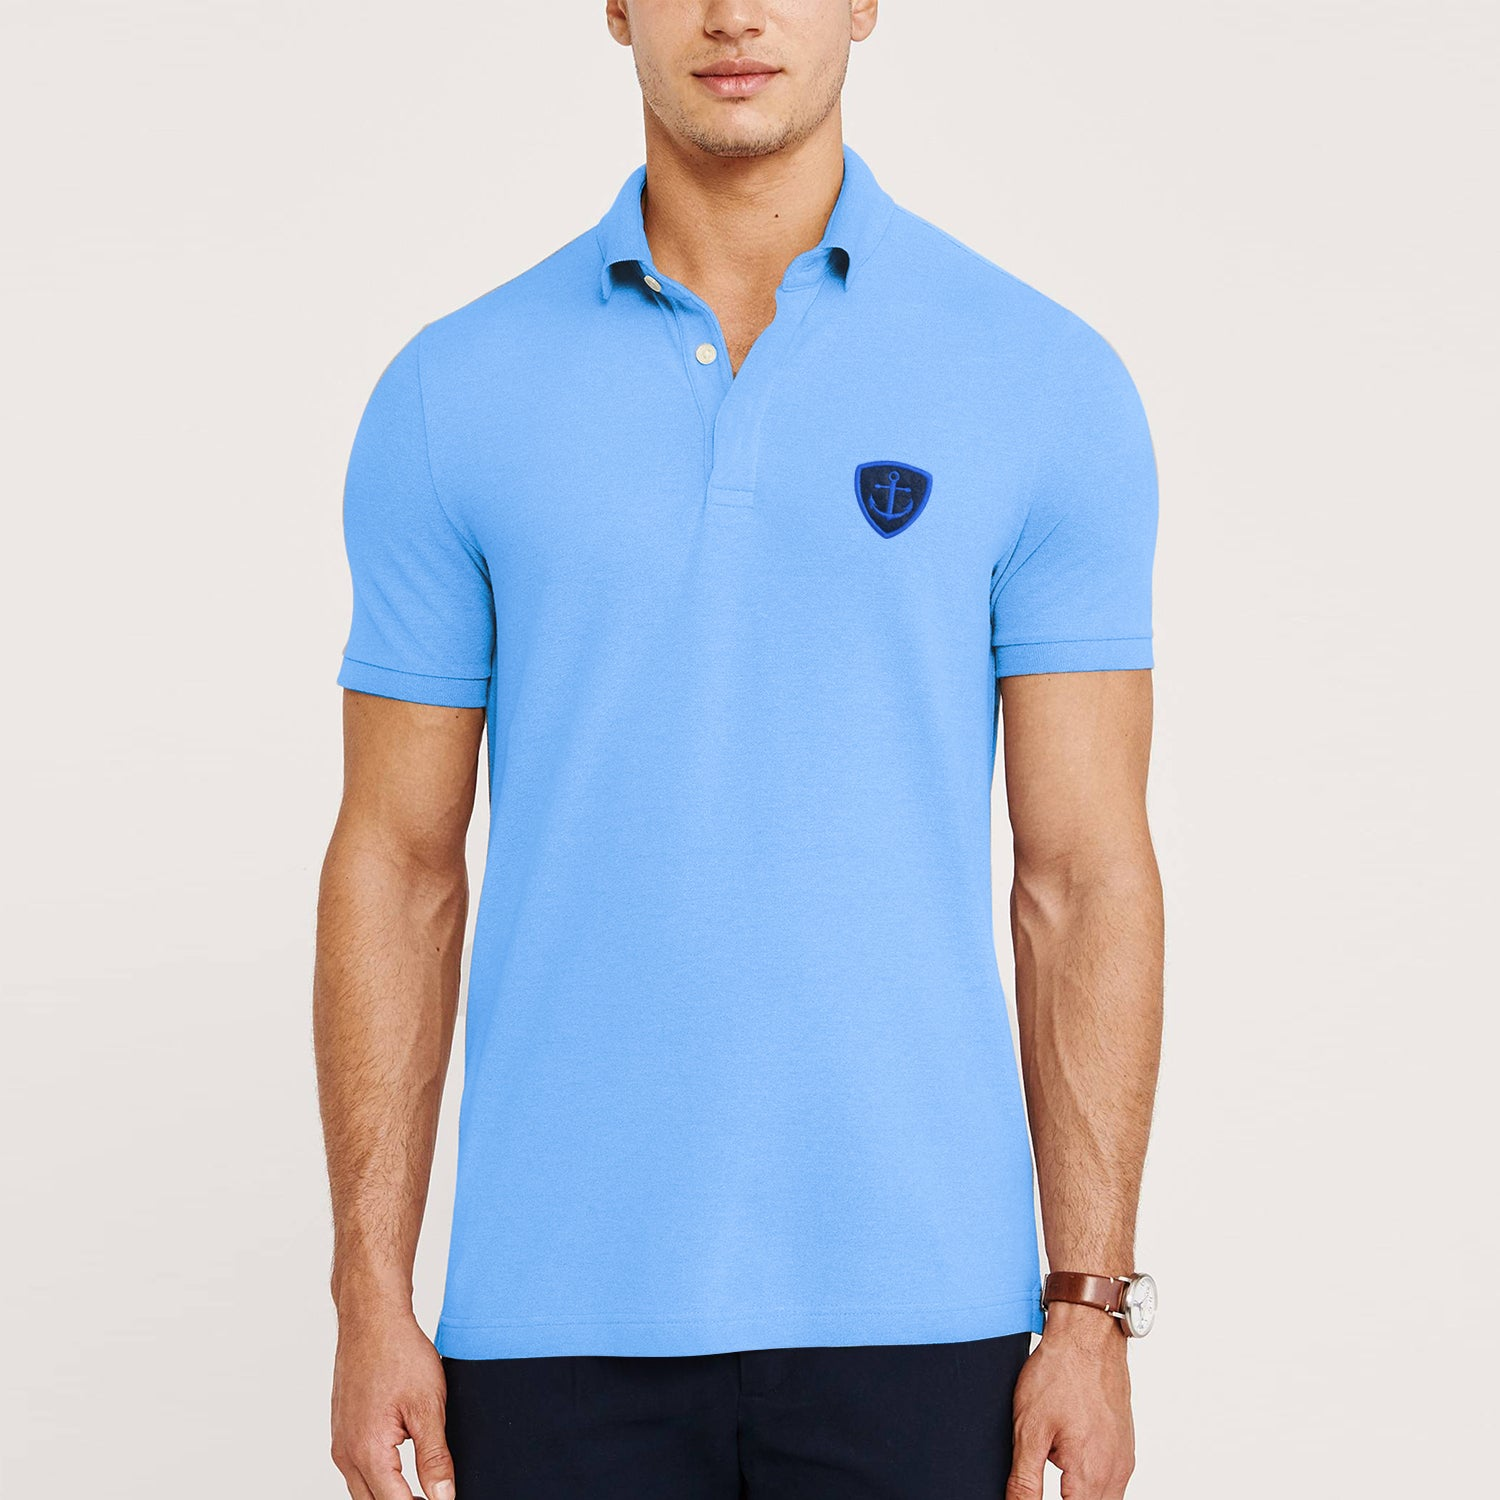 Express Stylish Summer Polo Shirt For Men-Light Sky-BE11435